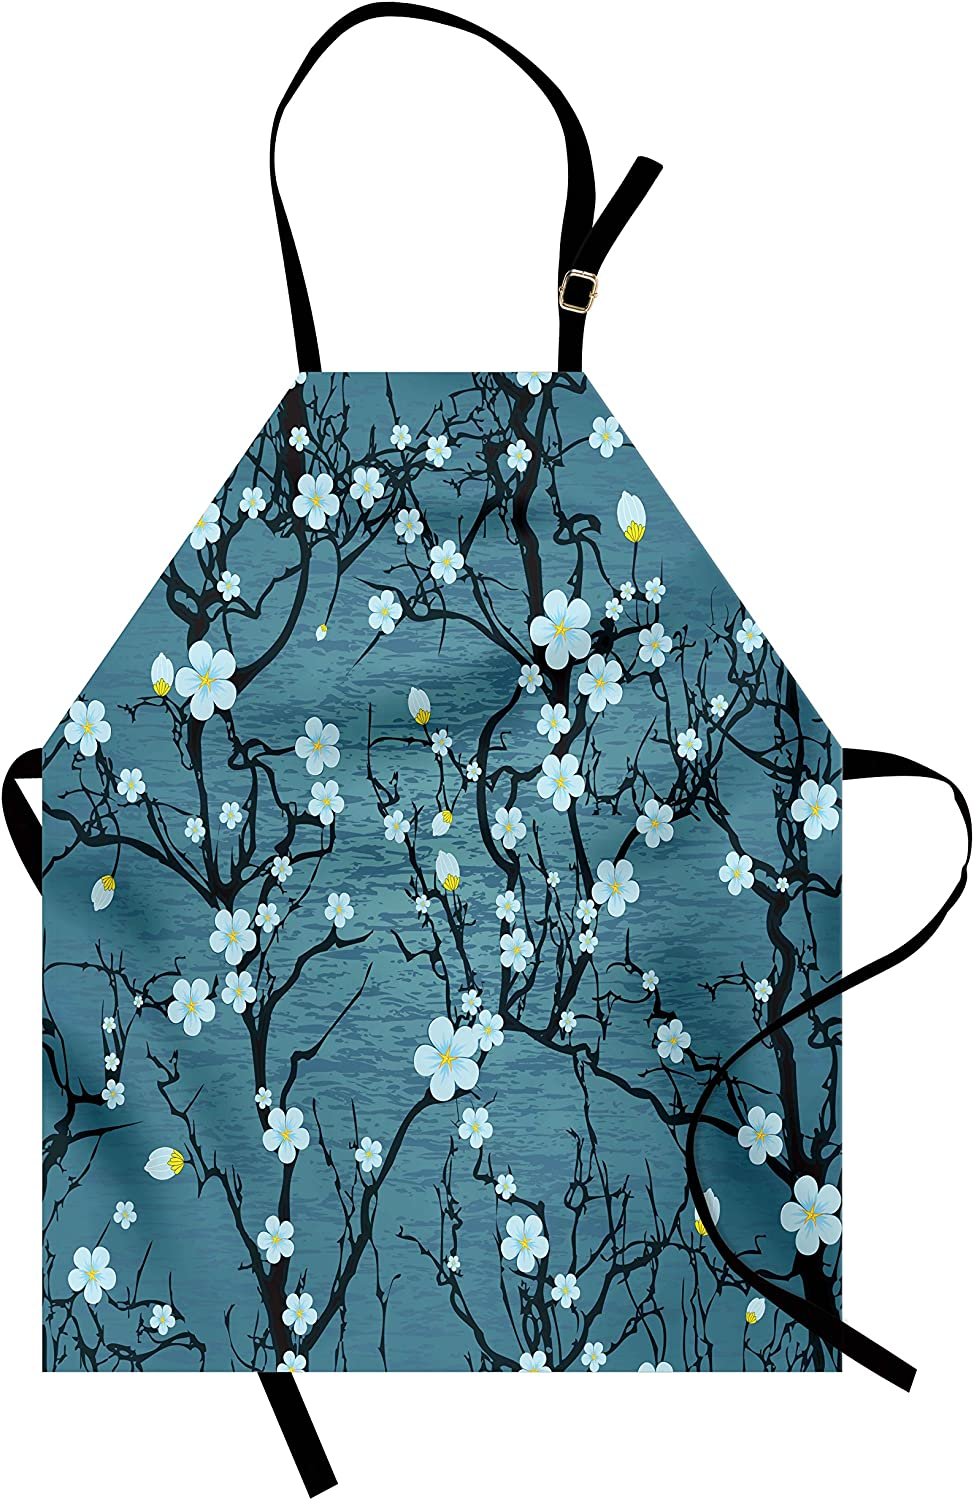 Lunarable Floral Apron, Sakura Tree Branches Pale Japanese Cherry Blossom Spring Form, Unisex Kitchen Bib with Adjustable Neck for Cooking Gardening, Adult Size, Blue